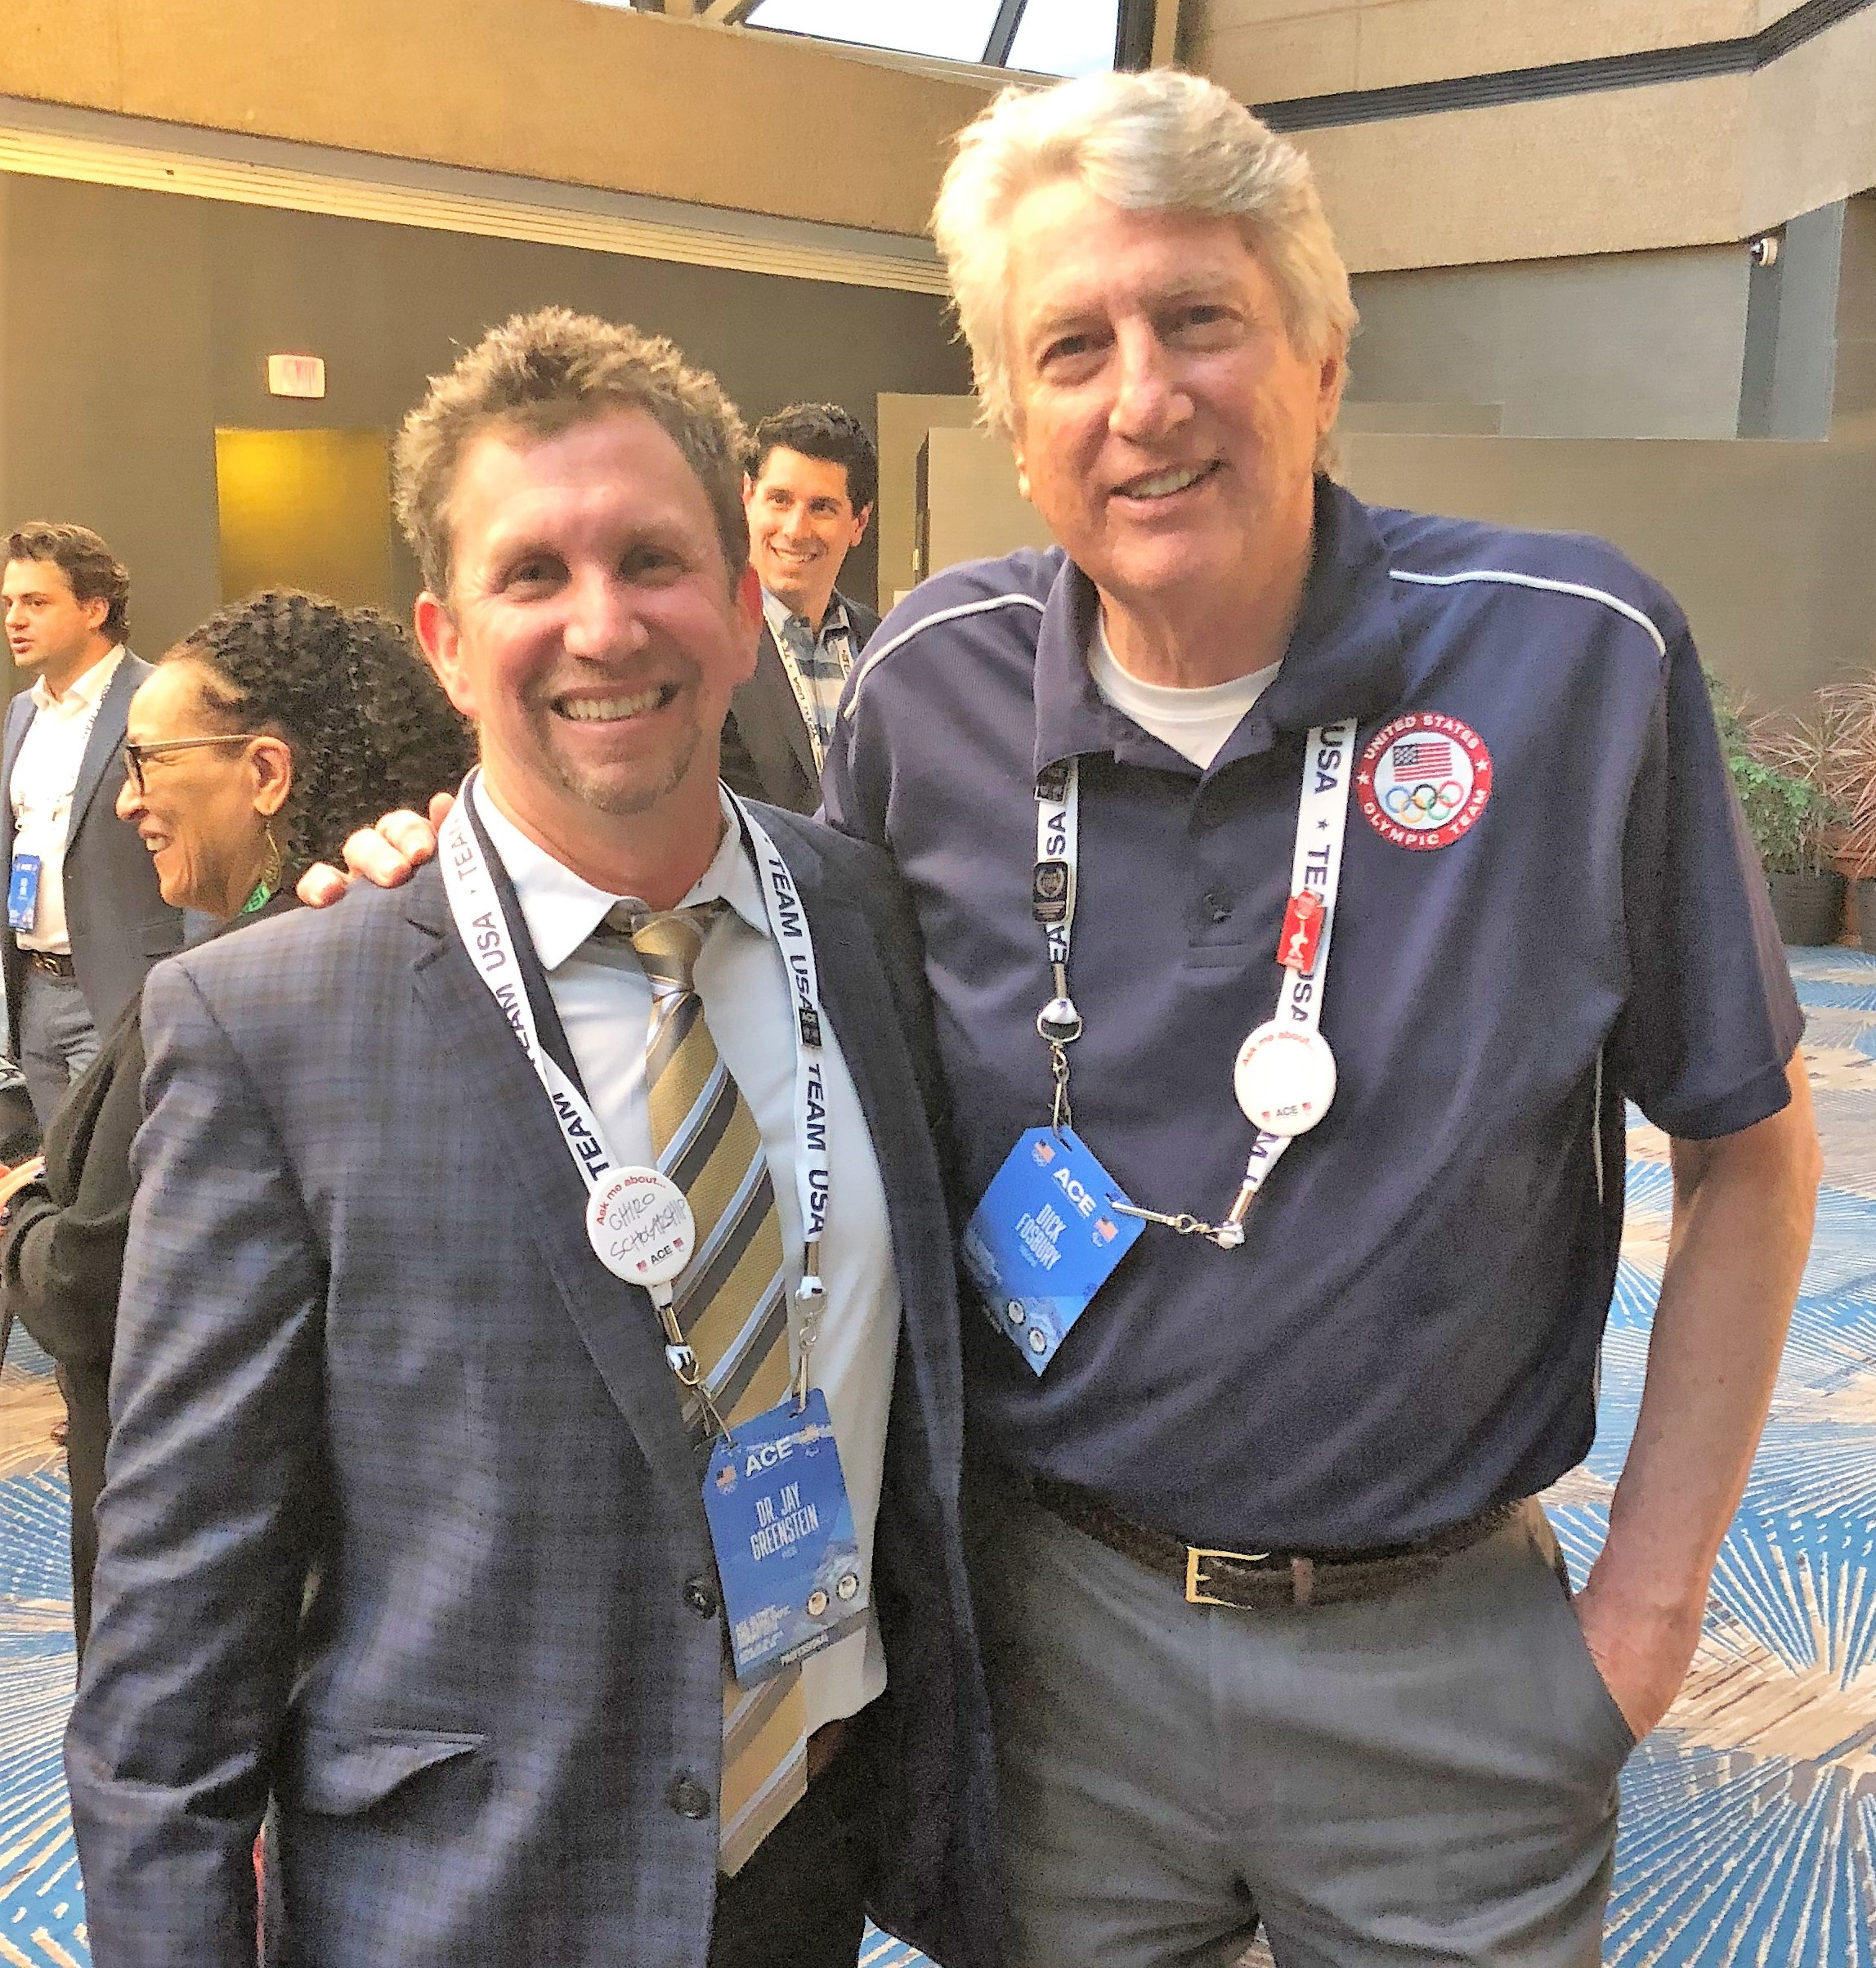 Olympian Dick Fosbury with Dr. Jay